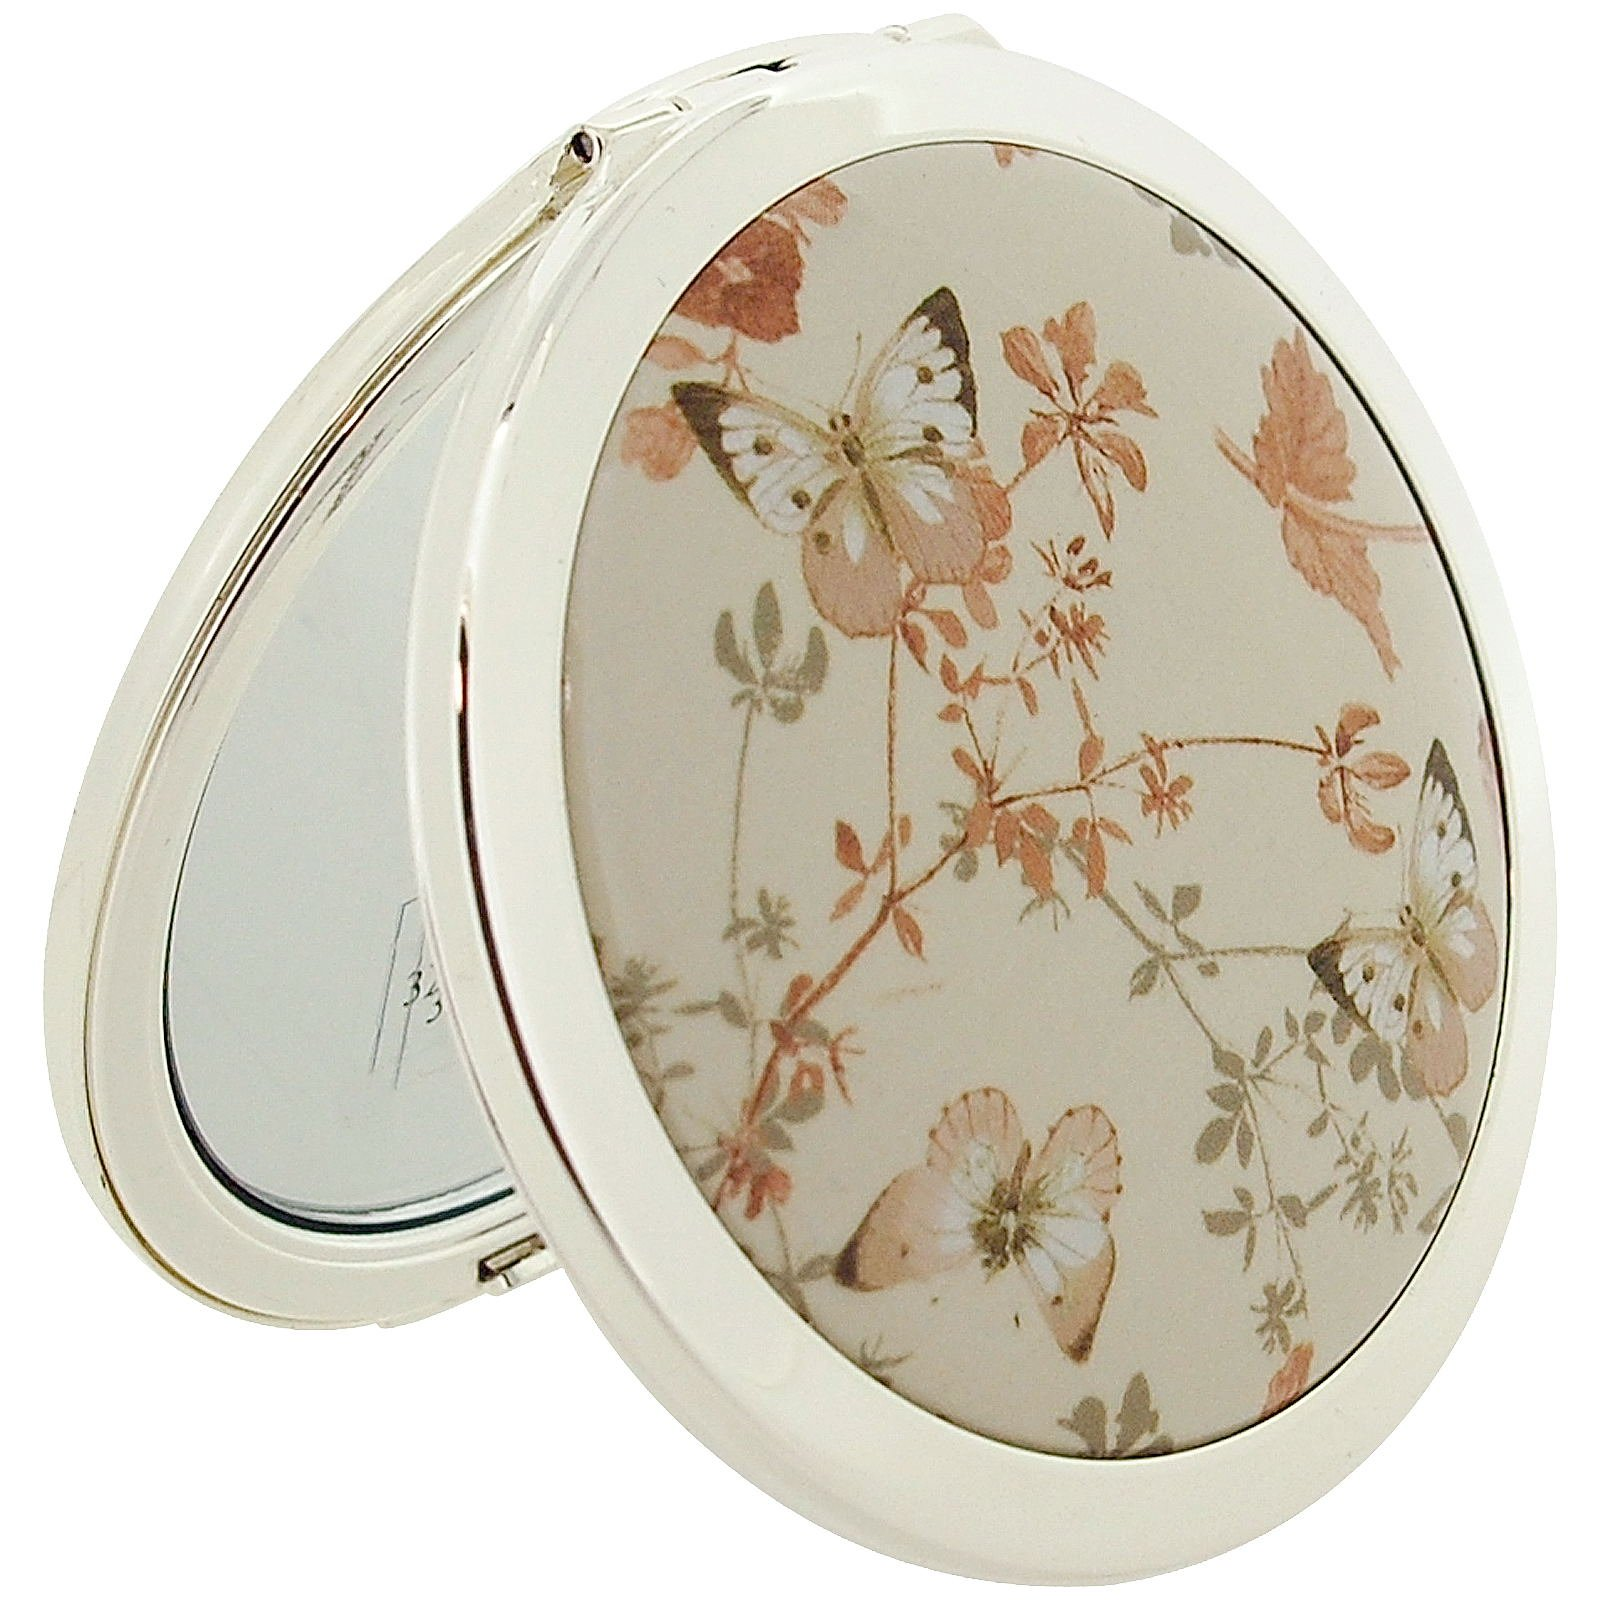 Stratton Compact Mirror Ladies Heritage Collection Butterfly Design 3x Magnification Pocket Mirror ST1151